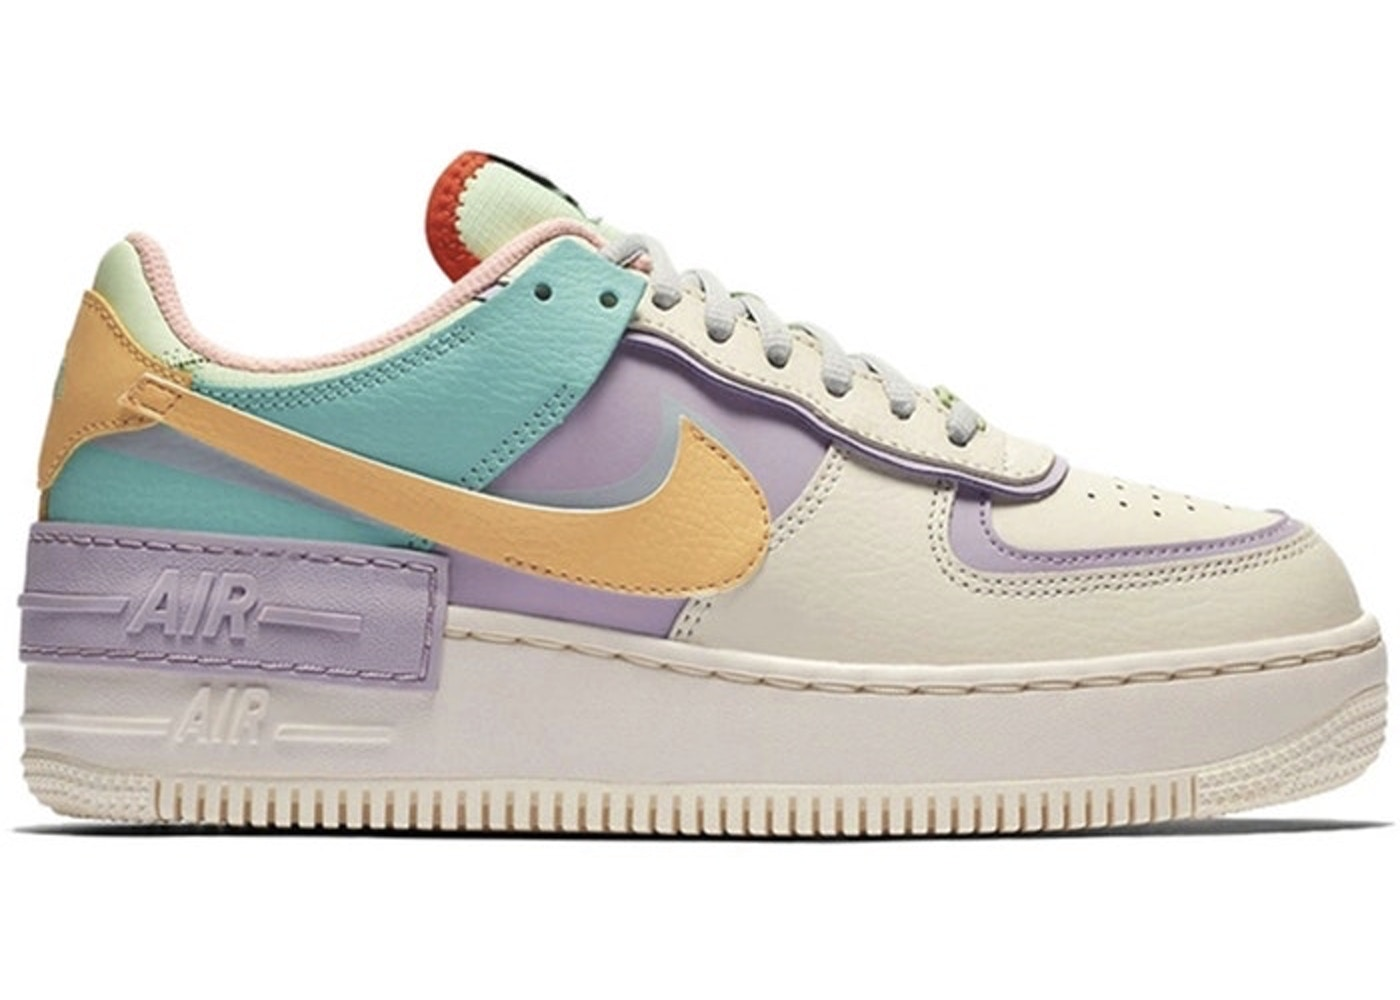 Nike Air Force 1 Shadow Pale Ivory W Ci0919 101